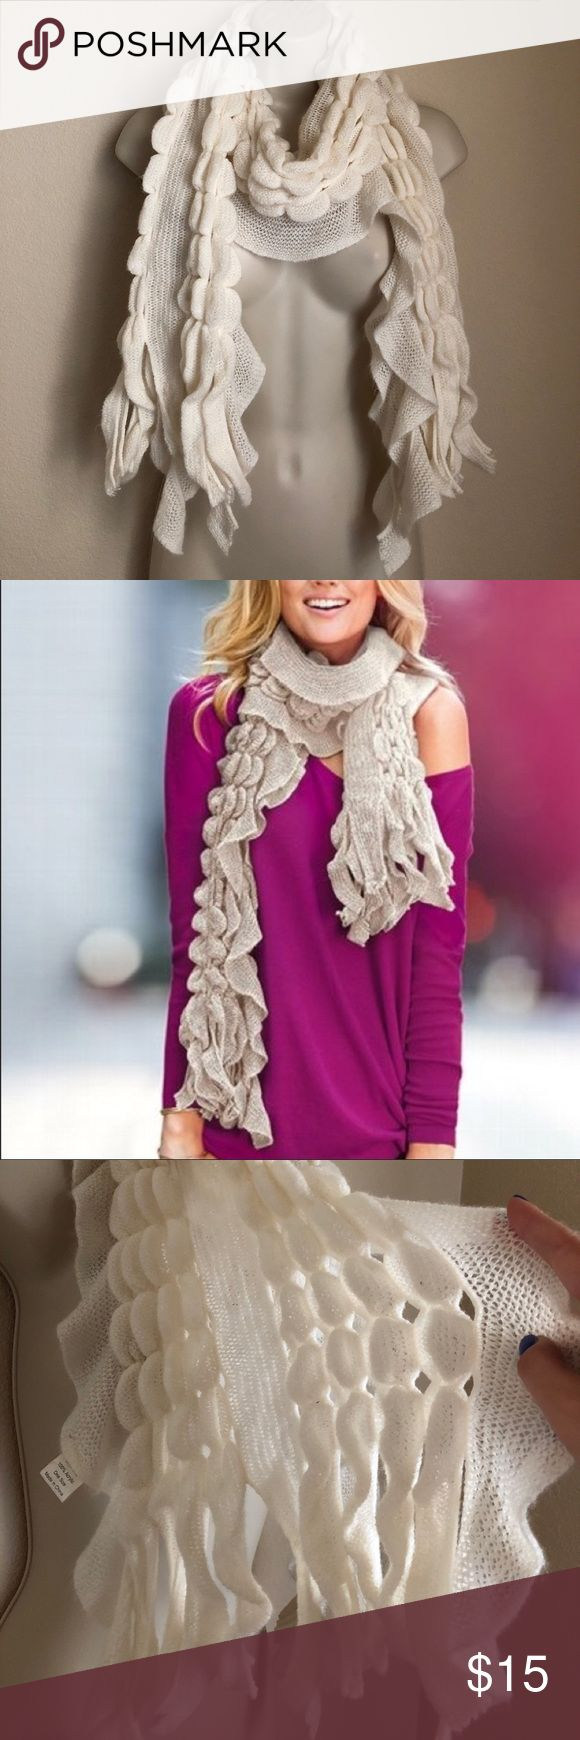 Victoria's Secret long knitted cream scarf Pre owned but in a great condition Victoria's Secret Accessories Scarves & Wraps